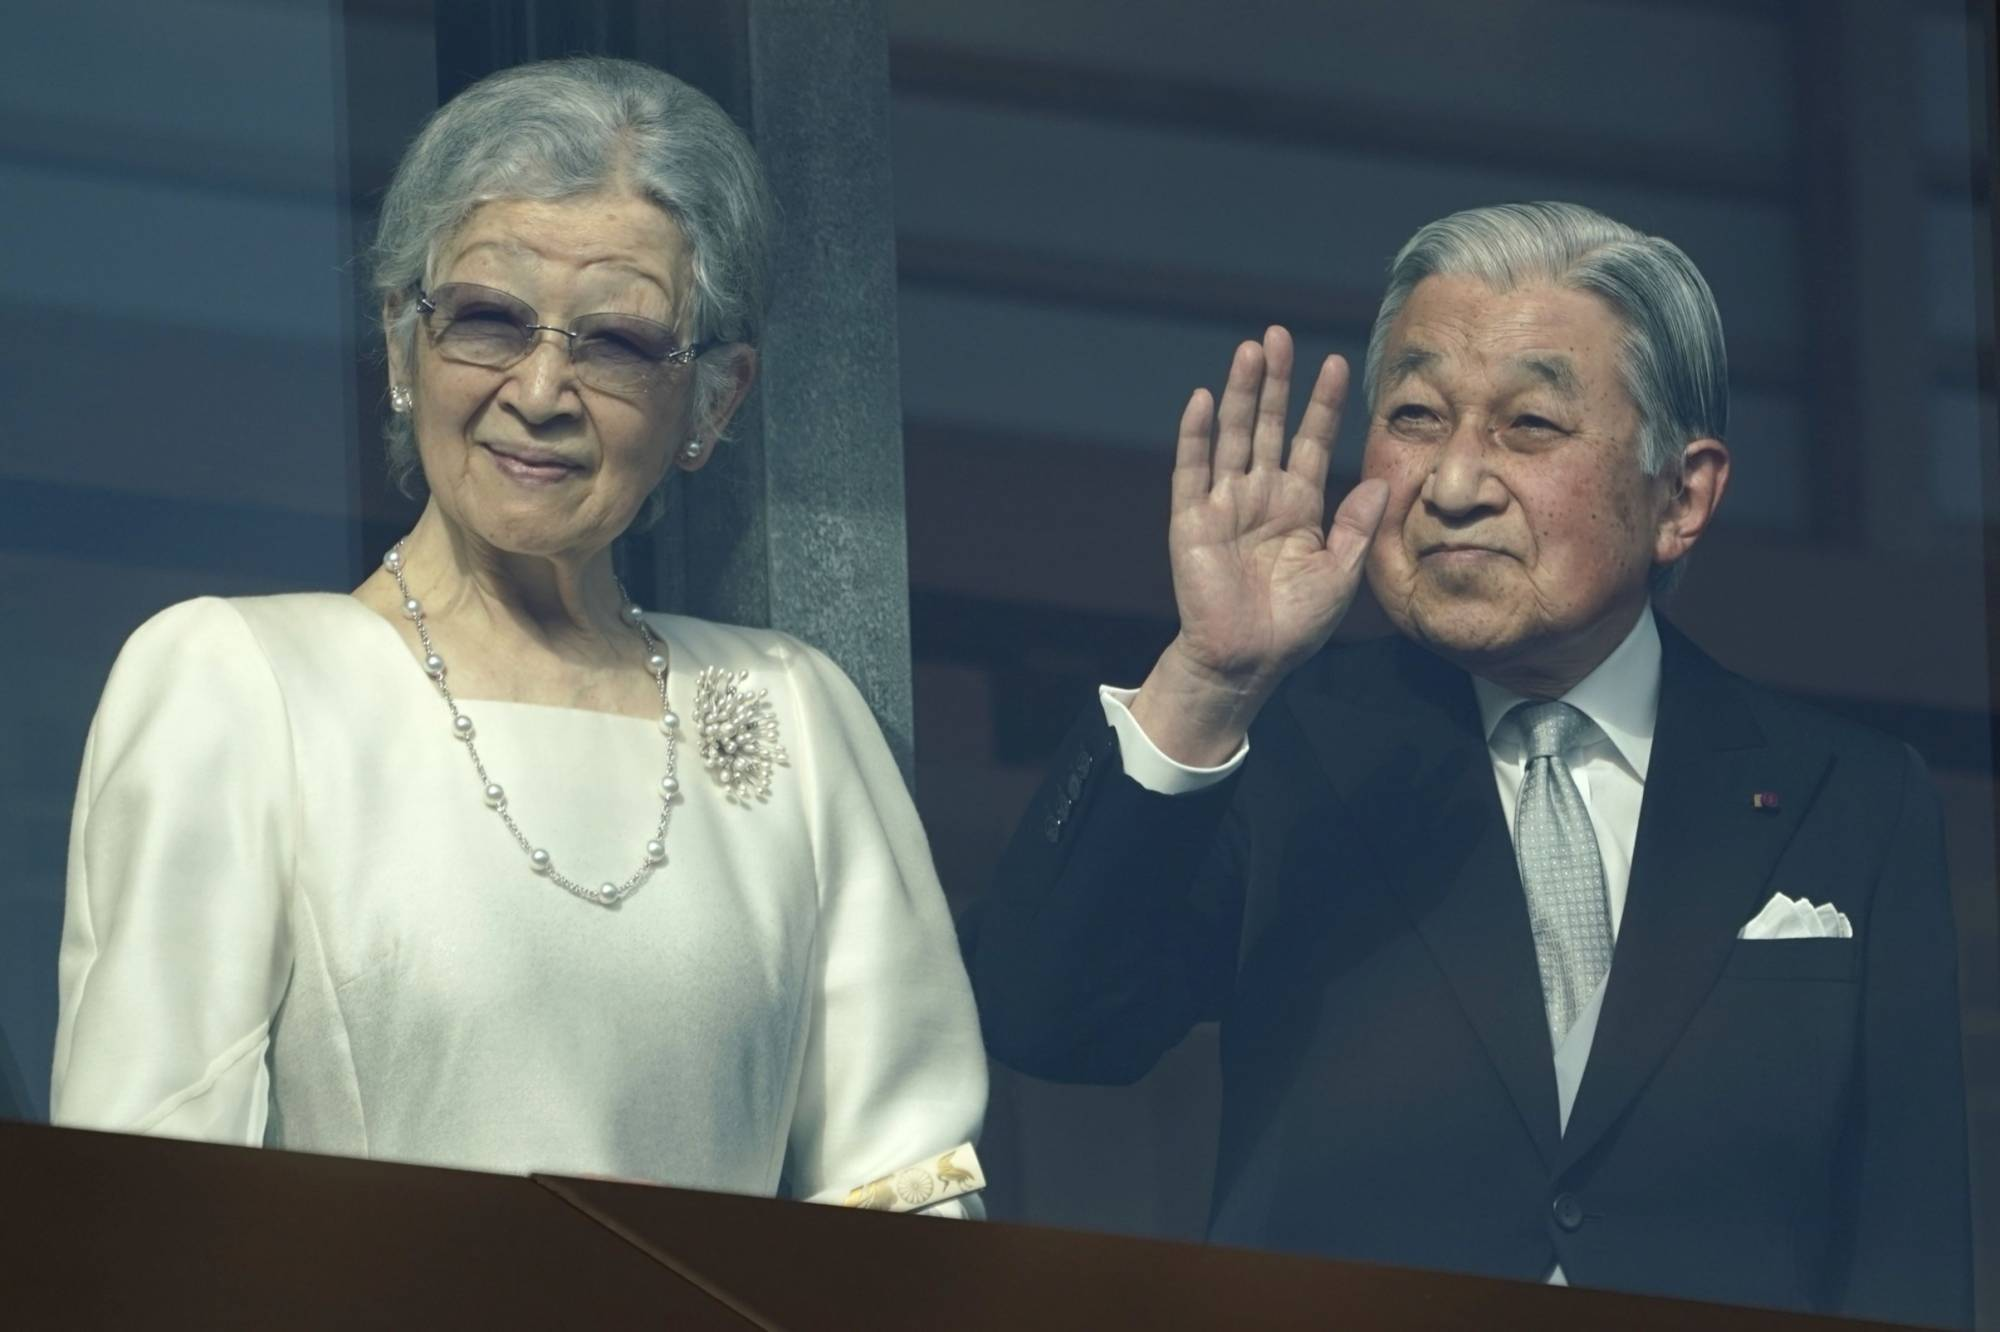 Emperor Emeritus Akihito waves to members of the public as Empress Emerita Michiko looks on during the New Year's appearance by the imperial family at the Imperial Palace in Tokyo on Jan. 2, 2020.   BLOOMBERG